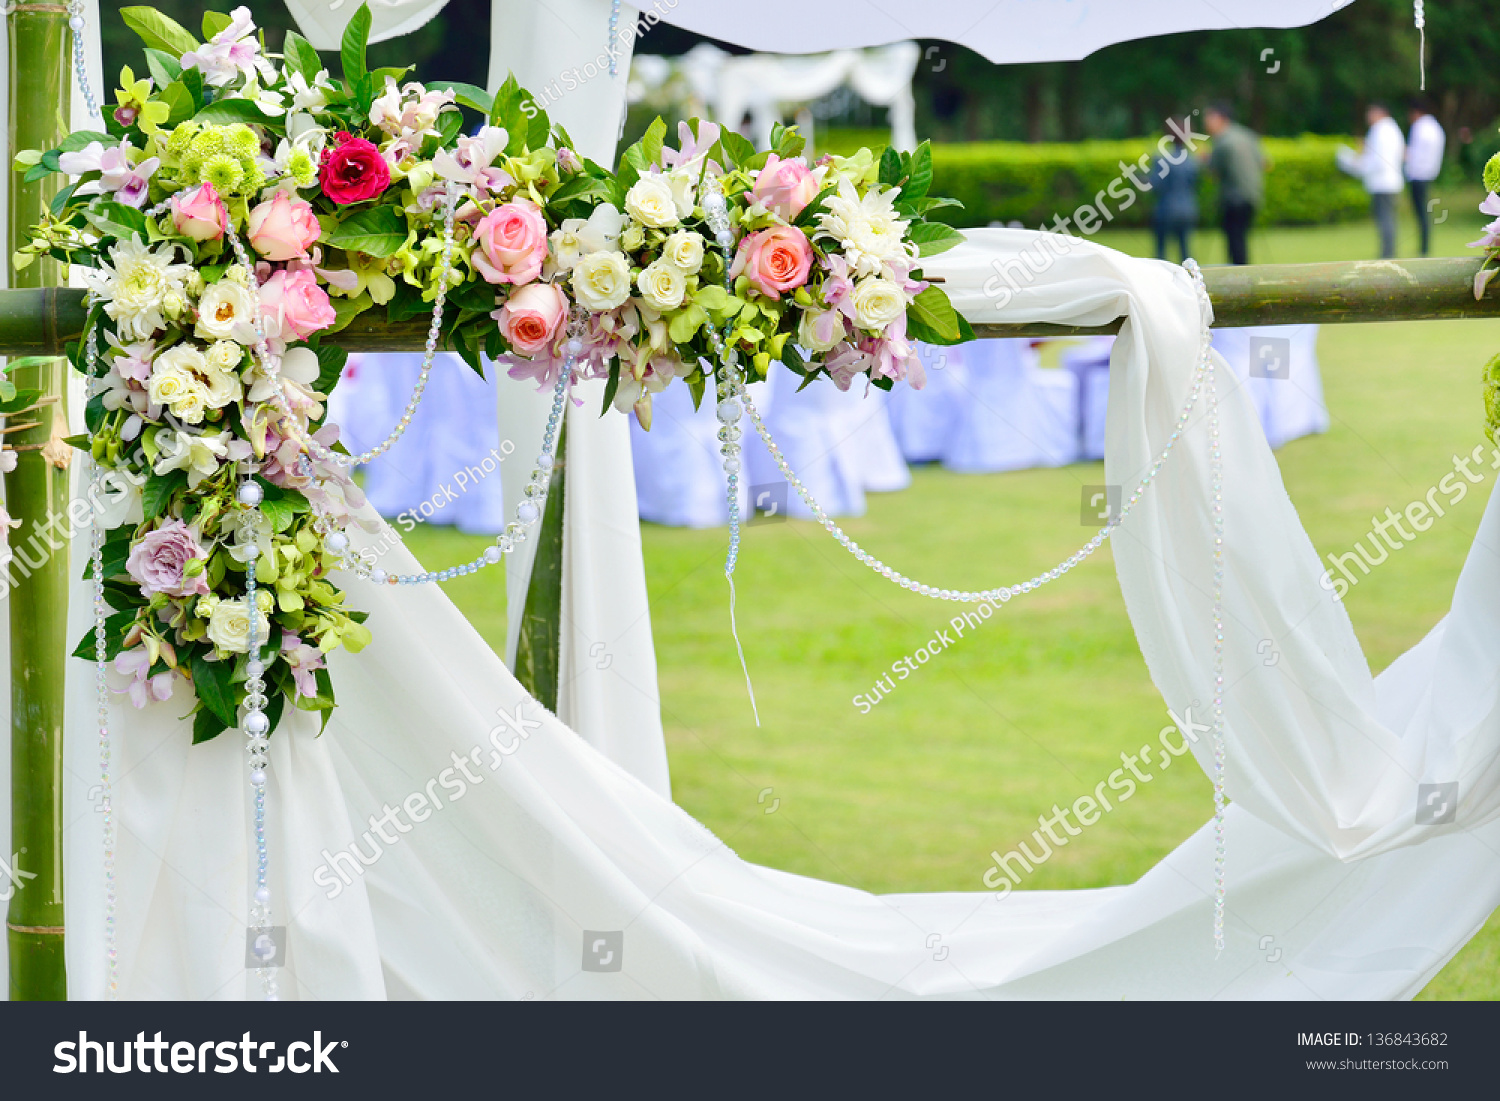 White Flowers Decorations During Outdoor Wedding Stock